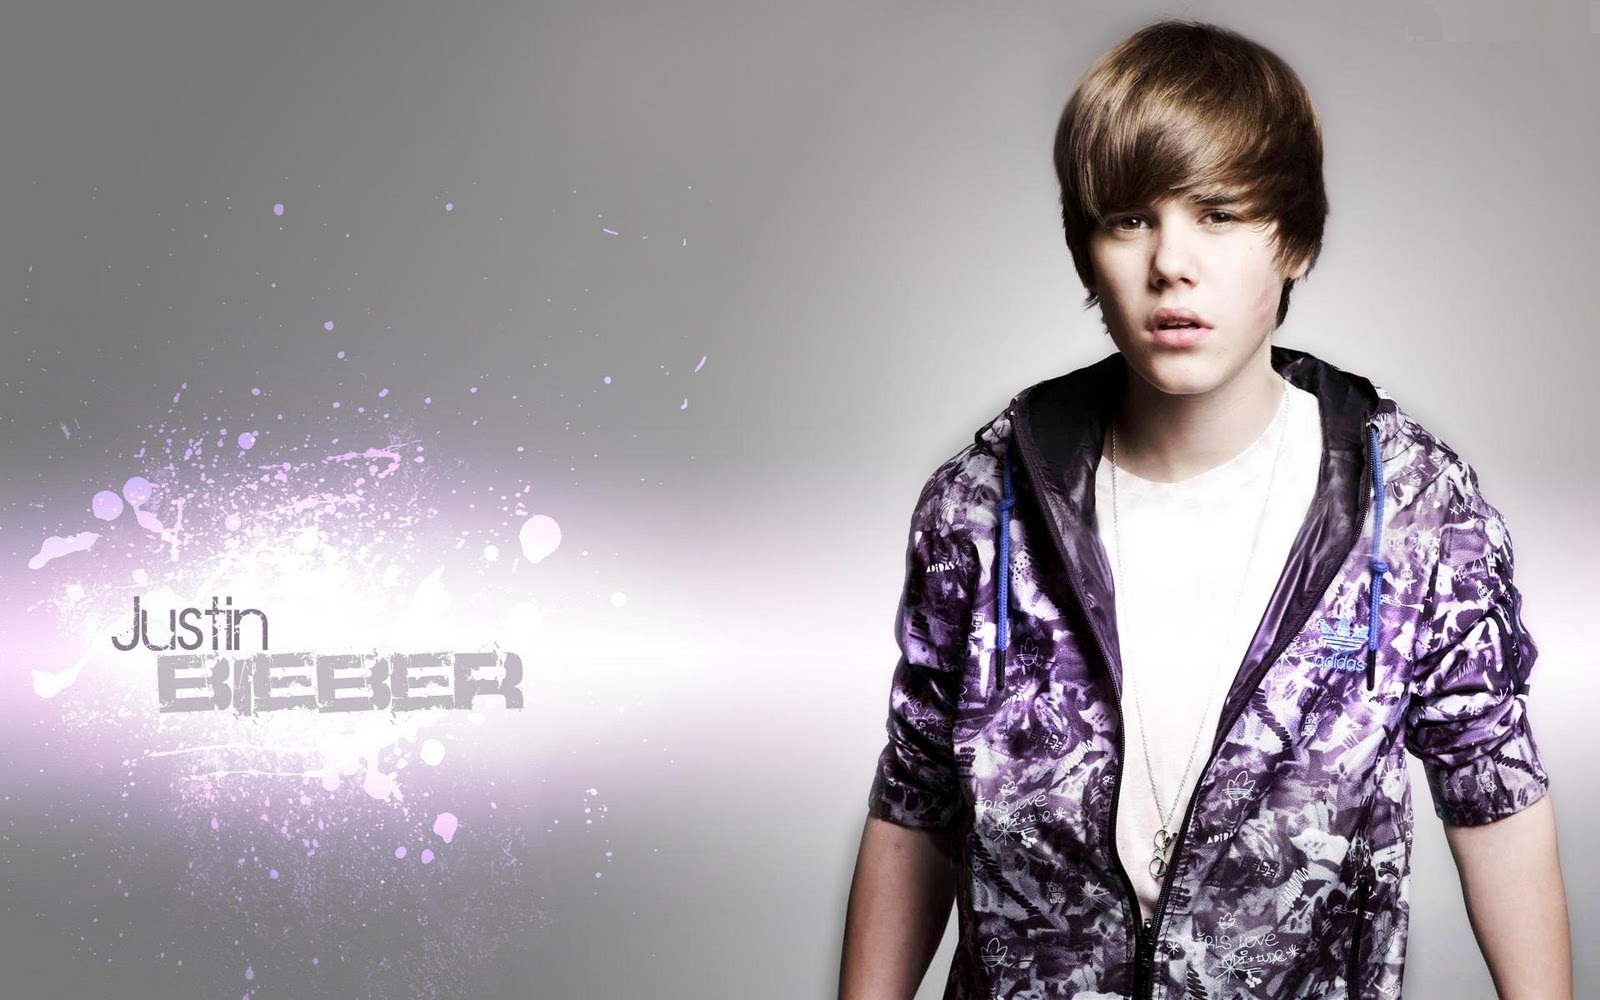 Justin Bieber New Hd Wallpapers 2012 2013 All About Hd